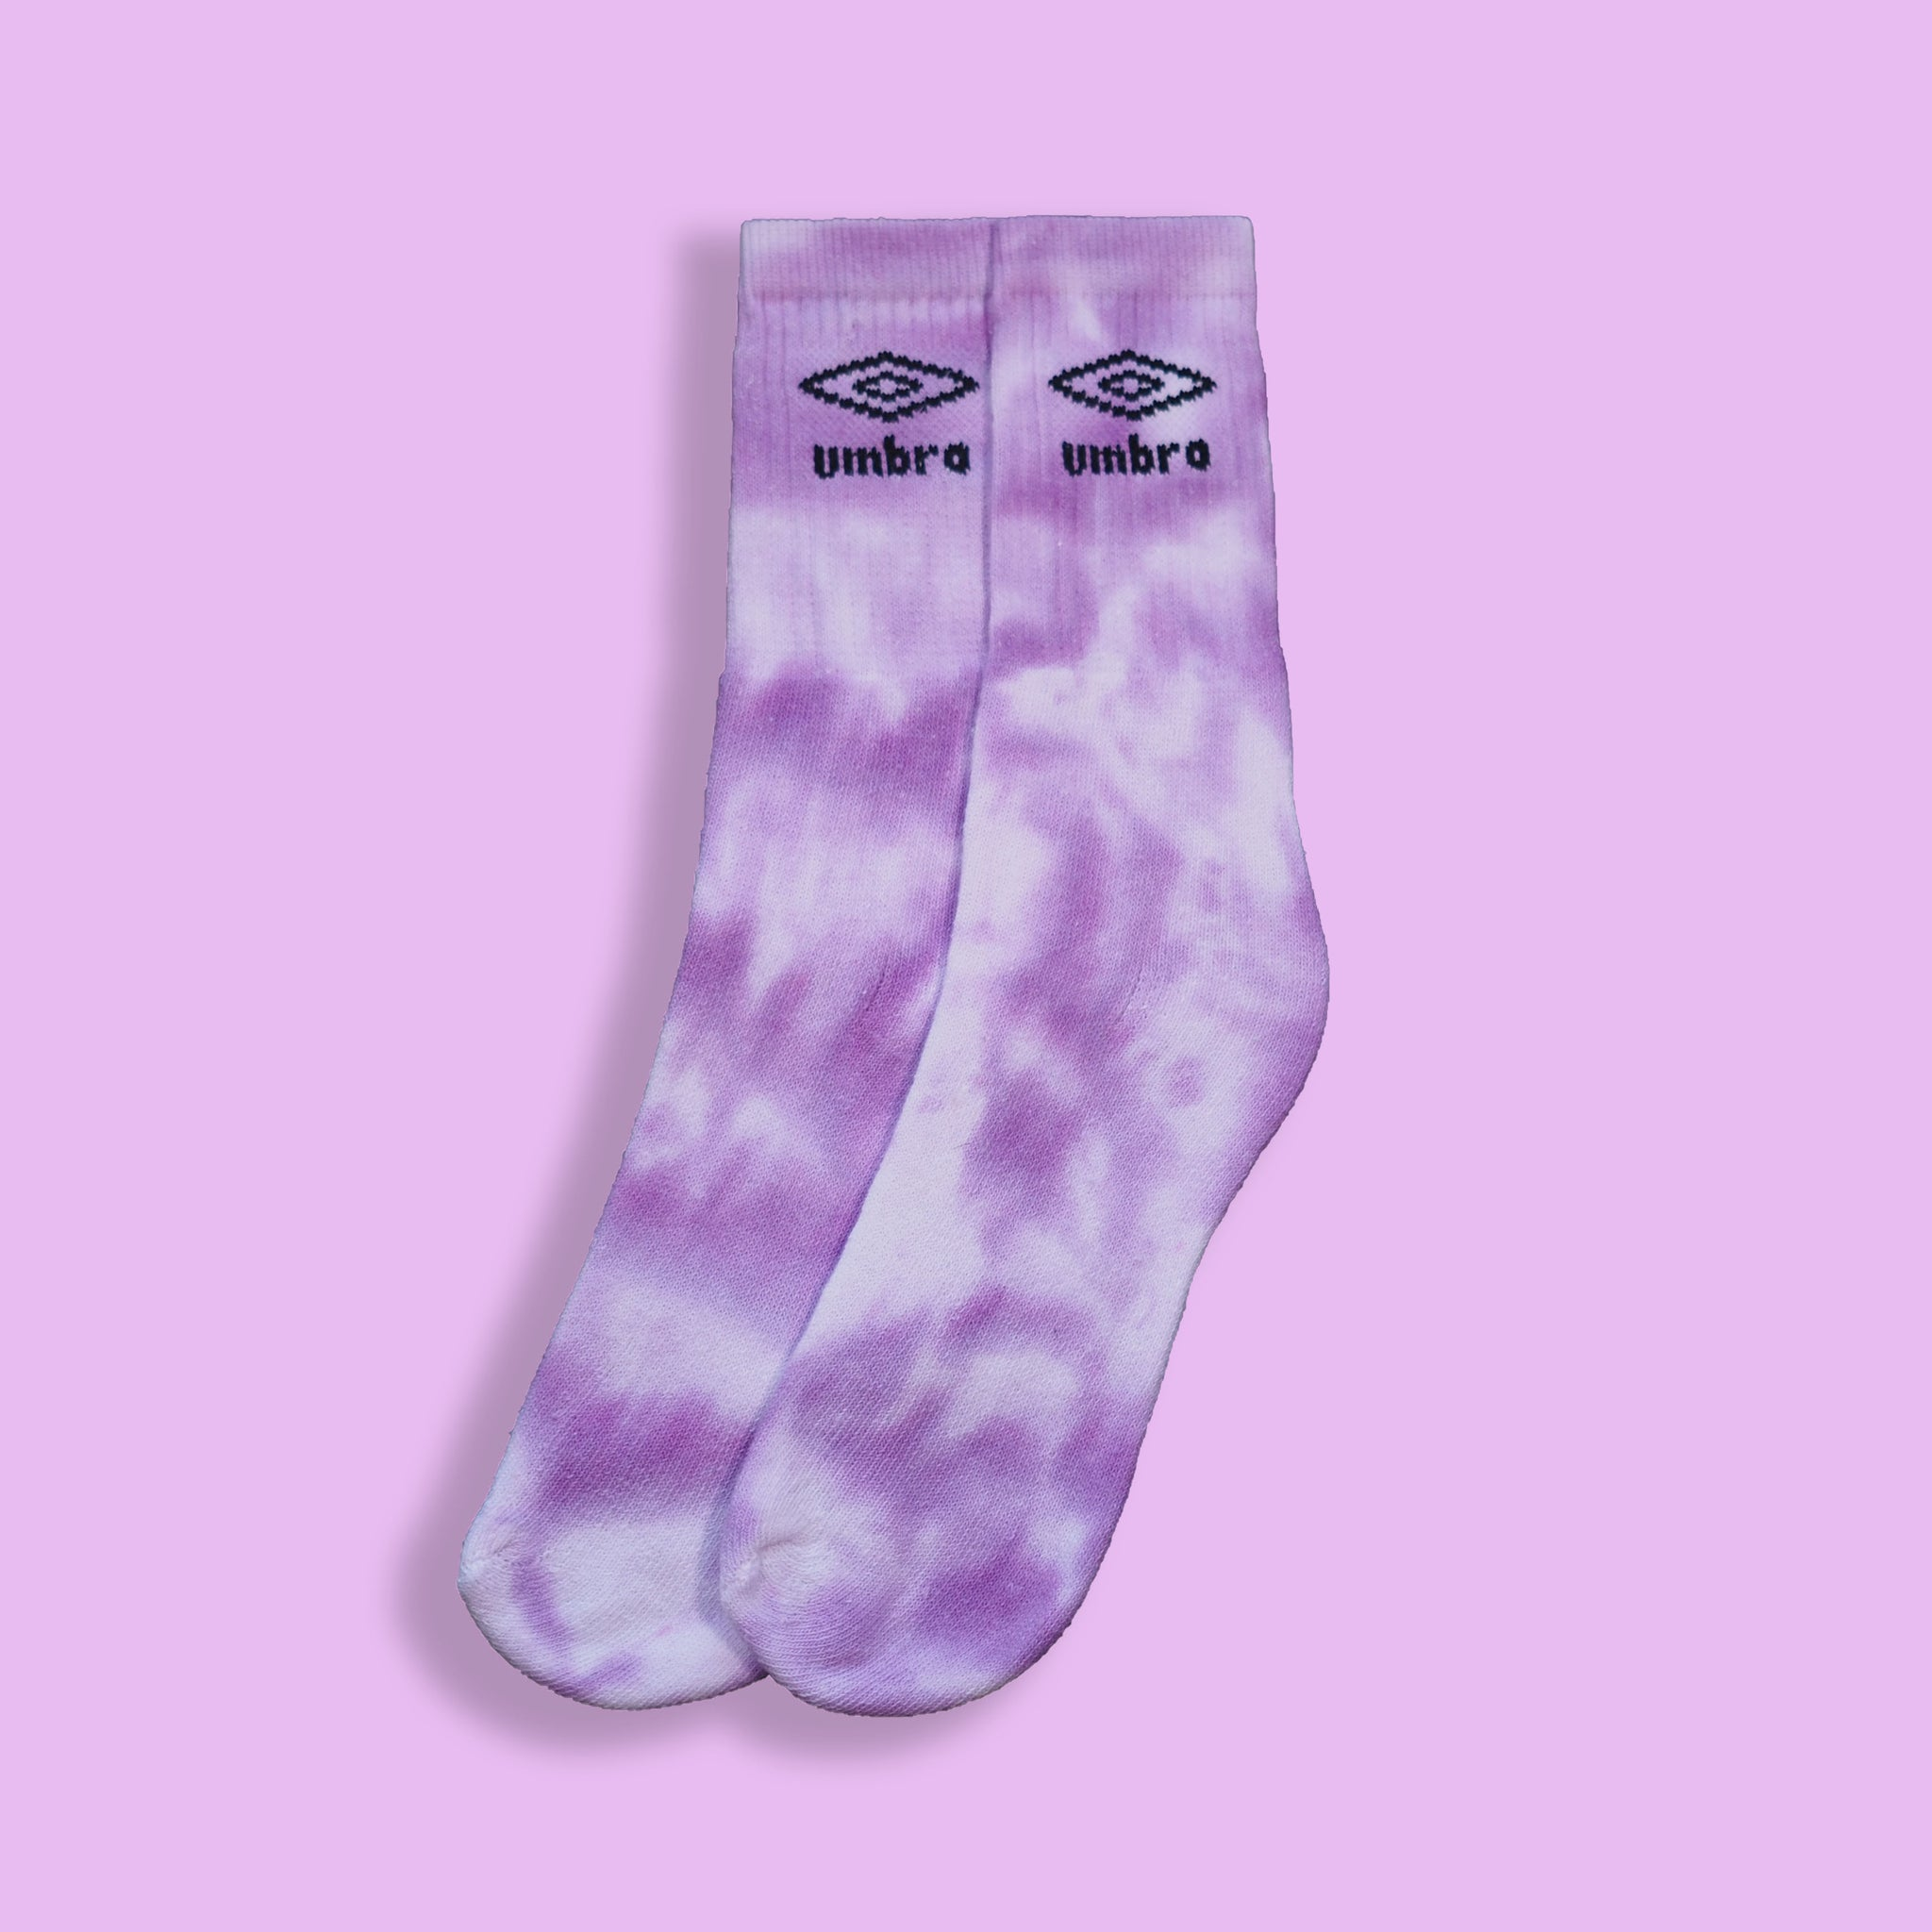 Umbro Socks Tie Dye Purple Medium